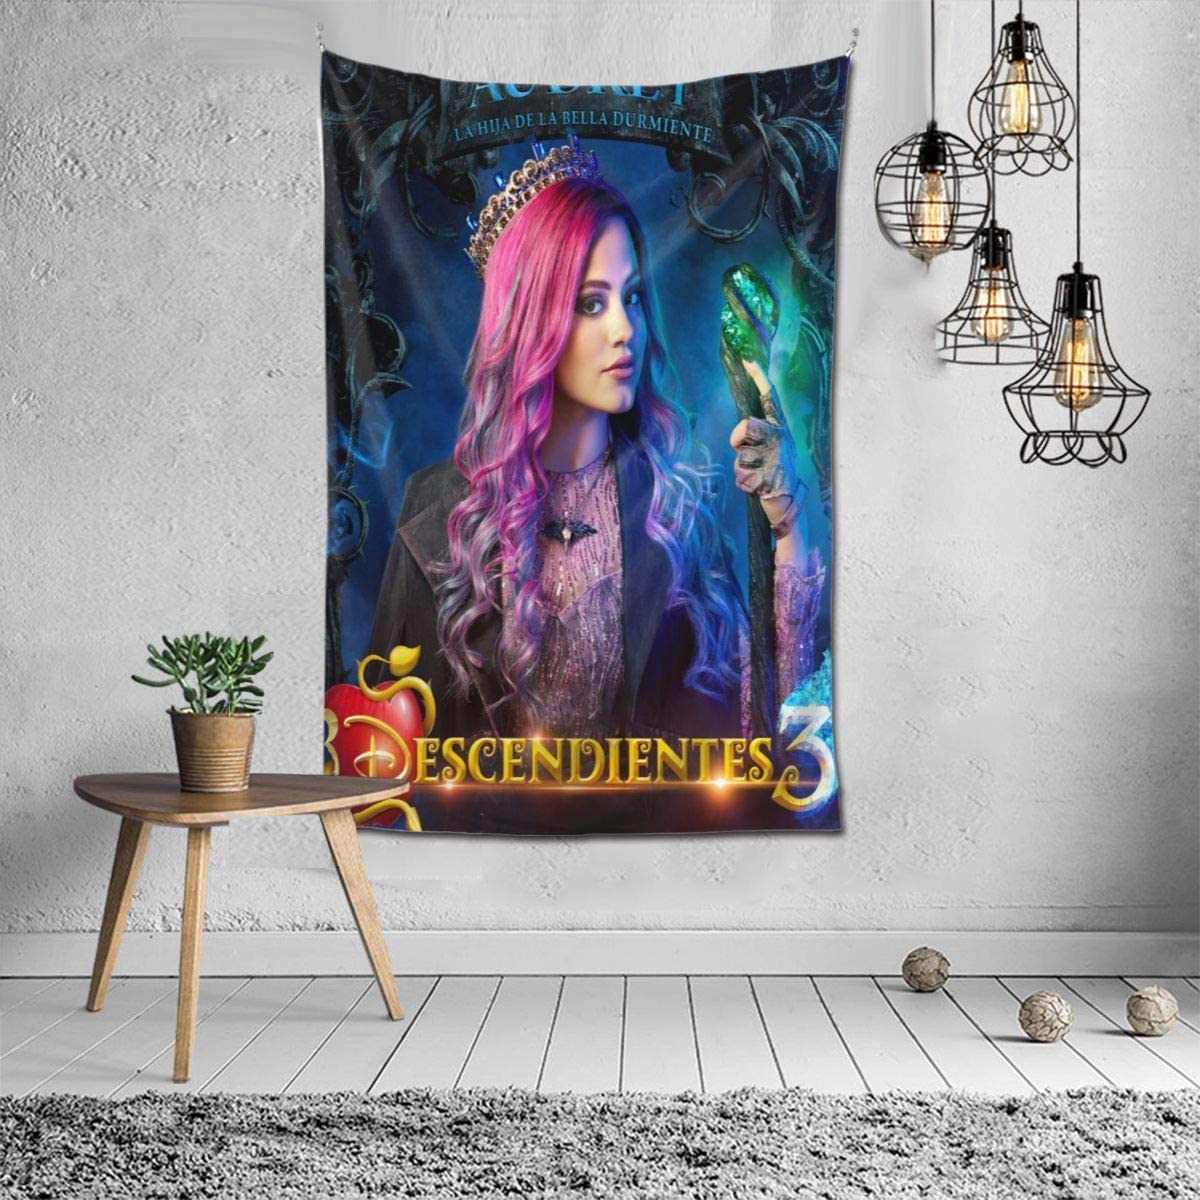 GuanRkon Descendants 3 Audrey Fashion Tapestry Men Women Wall Hanging Luxury Tapestries Home Decoration Gift One Size